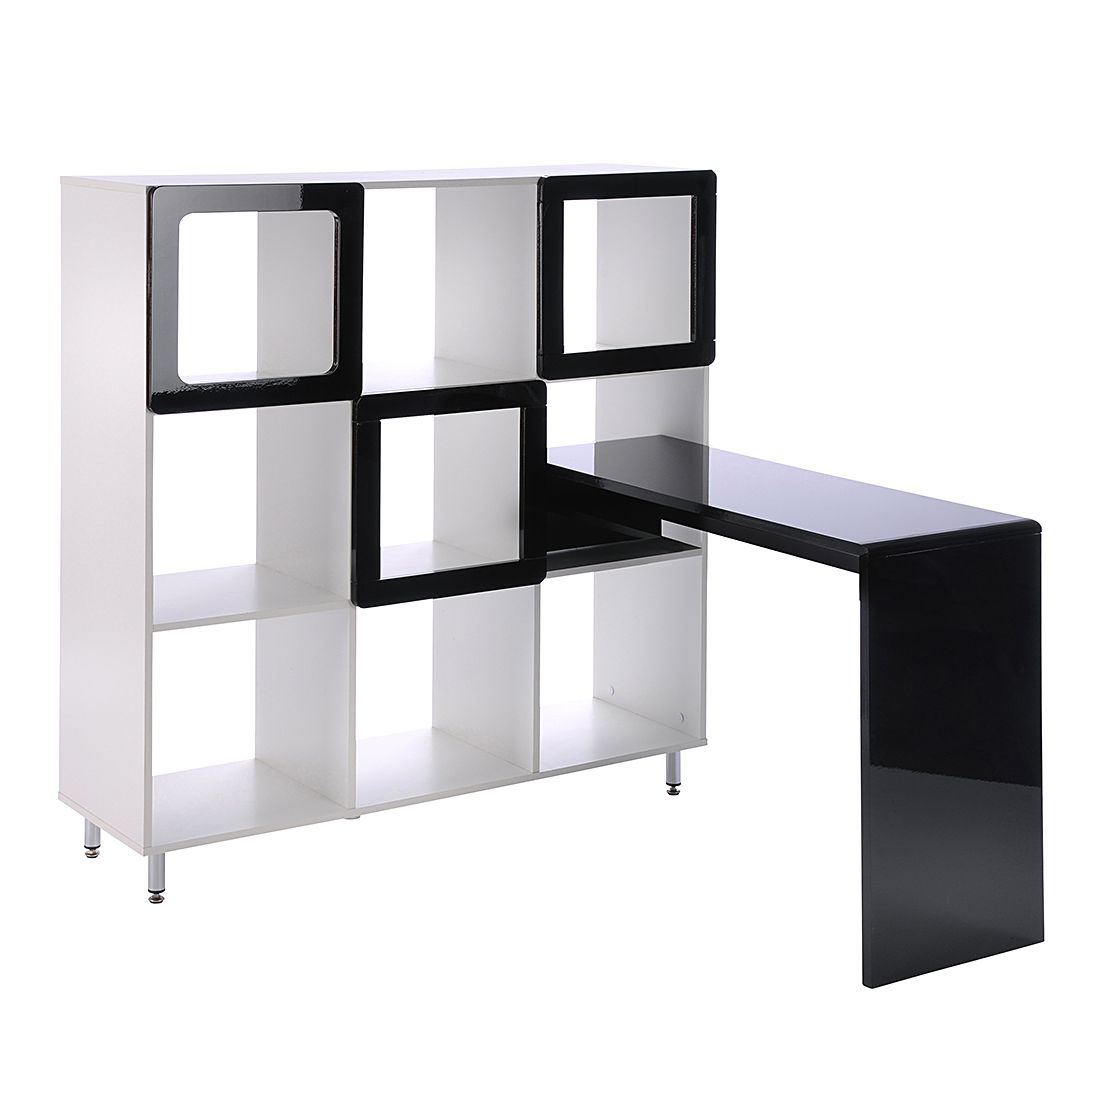 regal wei hochglanz raumteiler regal weiss regal awesome in in high definition raumteiler regal. Black Bedroom Furniture Sets. Home Design Ideas